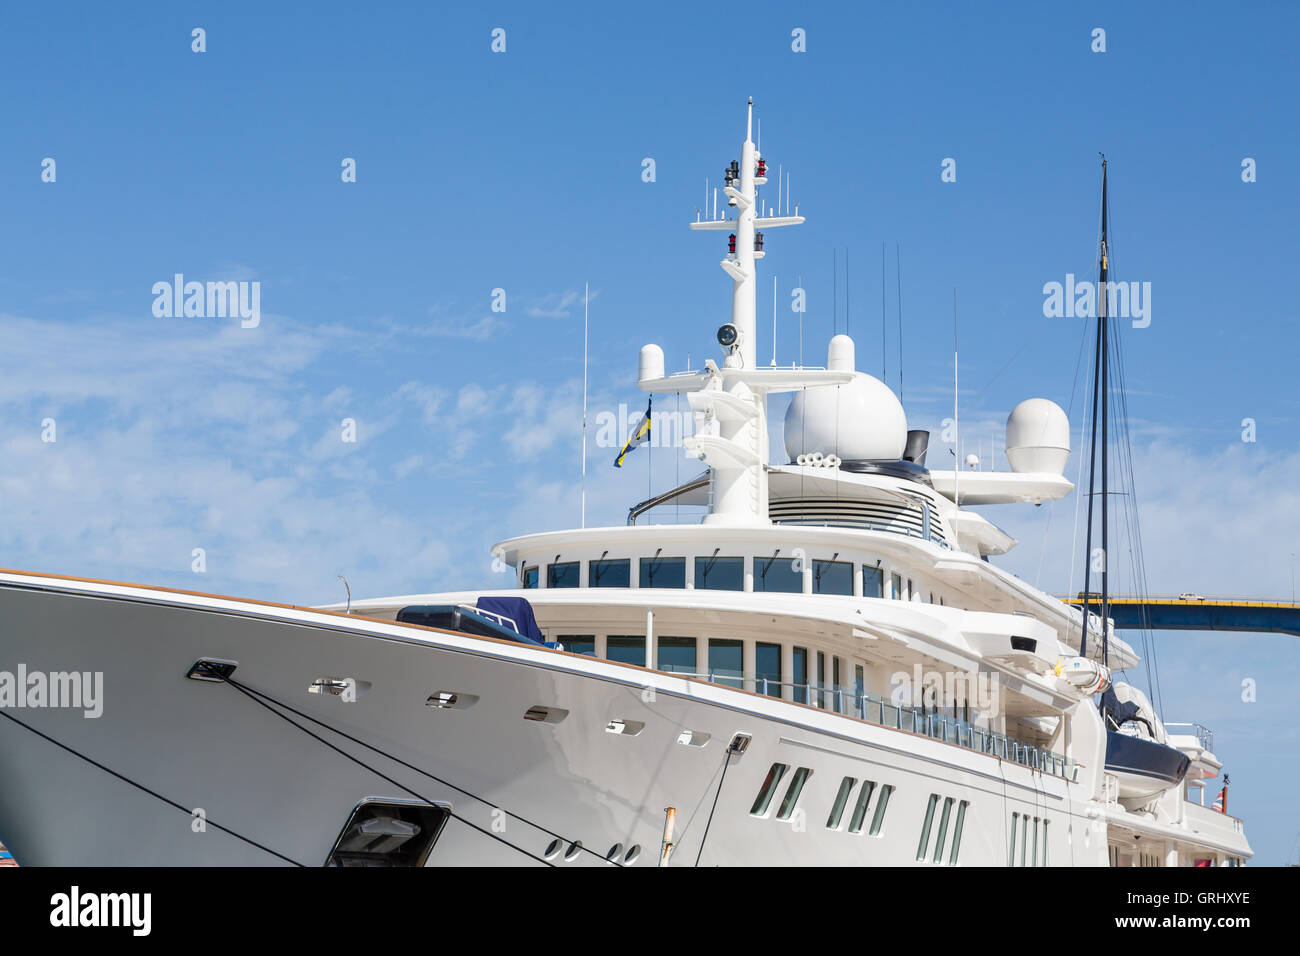 A huge white custom private yacht docked in Curacao - Stock Image